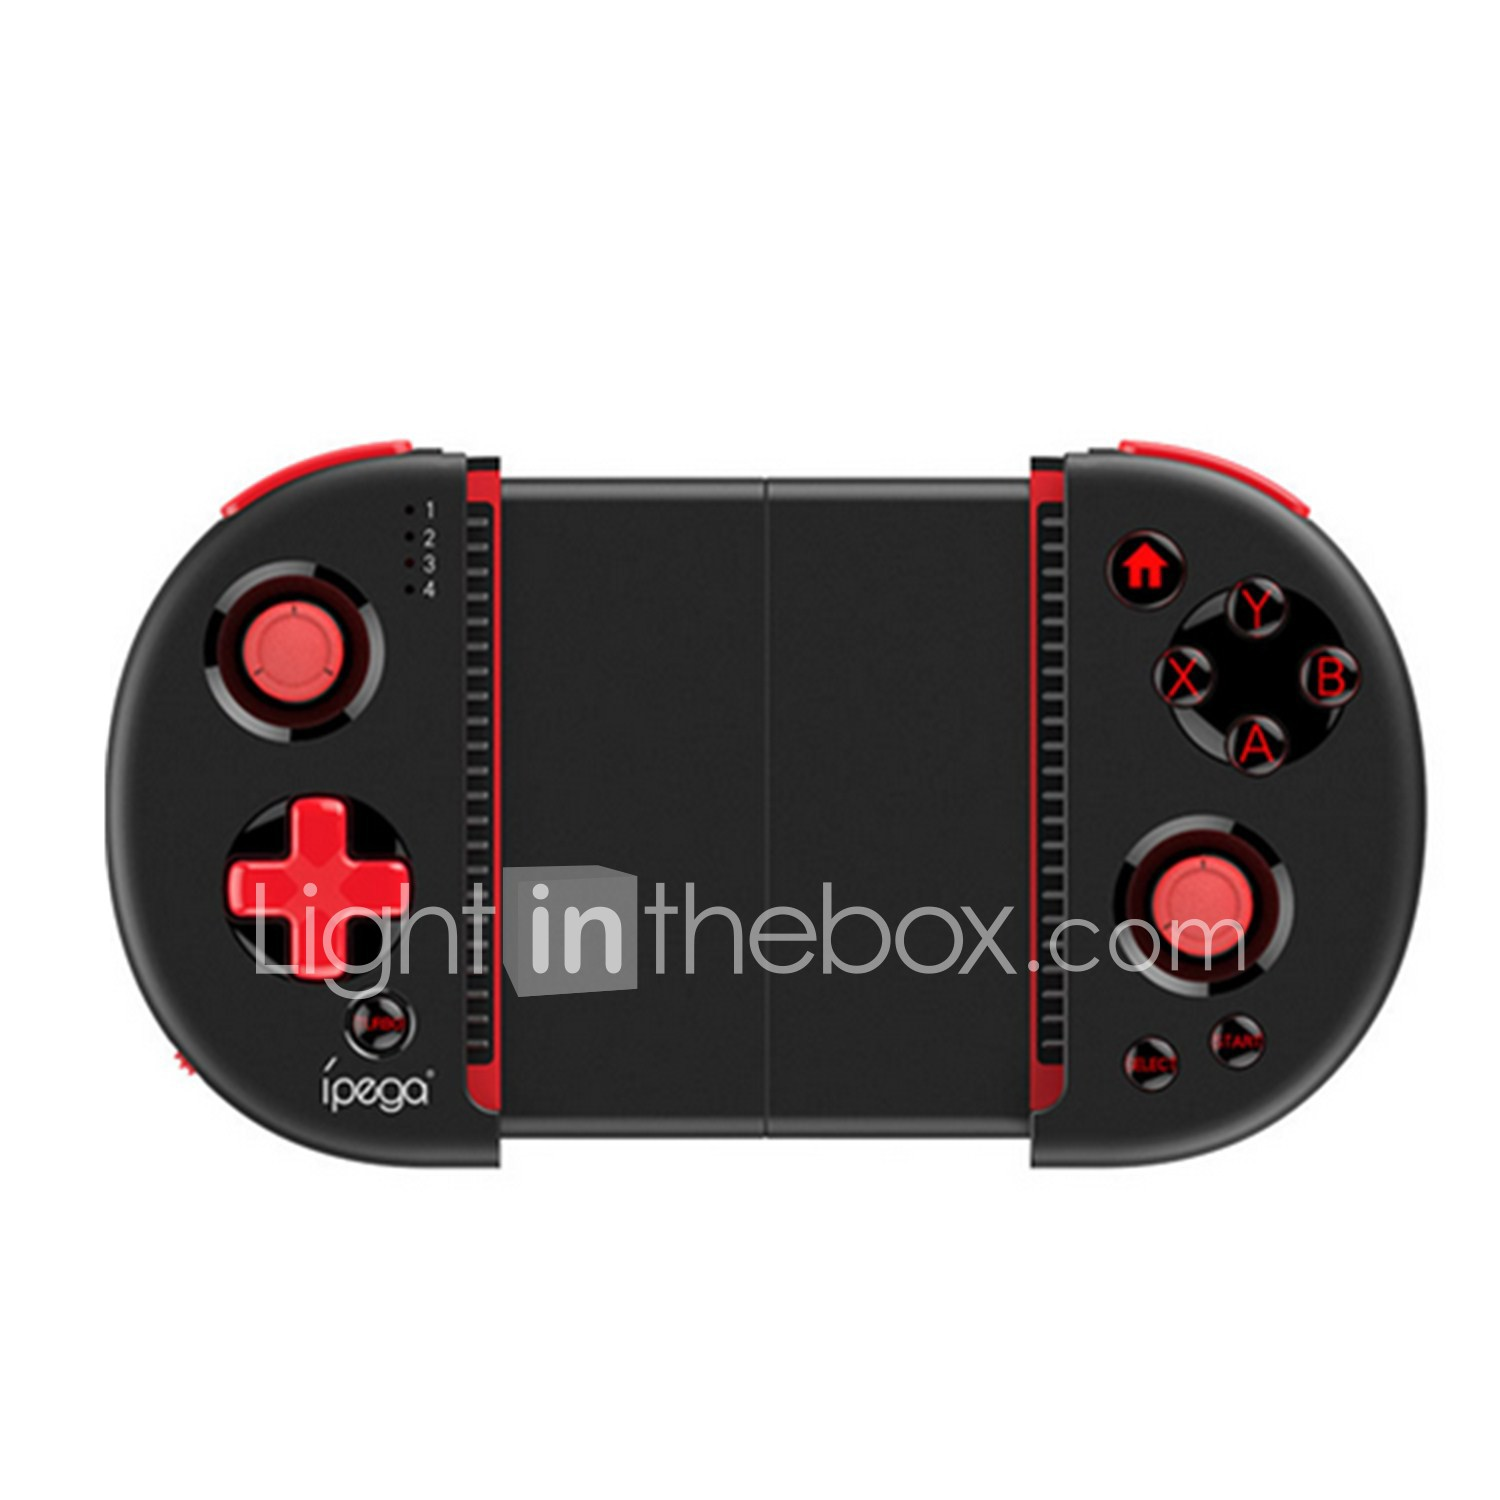 Ipega Pg 9087 Wireless Game Controller For Pc Smartphone Mobile Gaming Bluetooth 30 Android And Ios 9021 Black Accessories Photo By Supplier